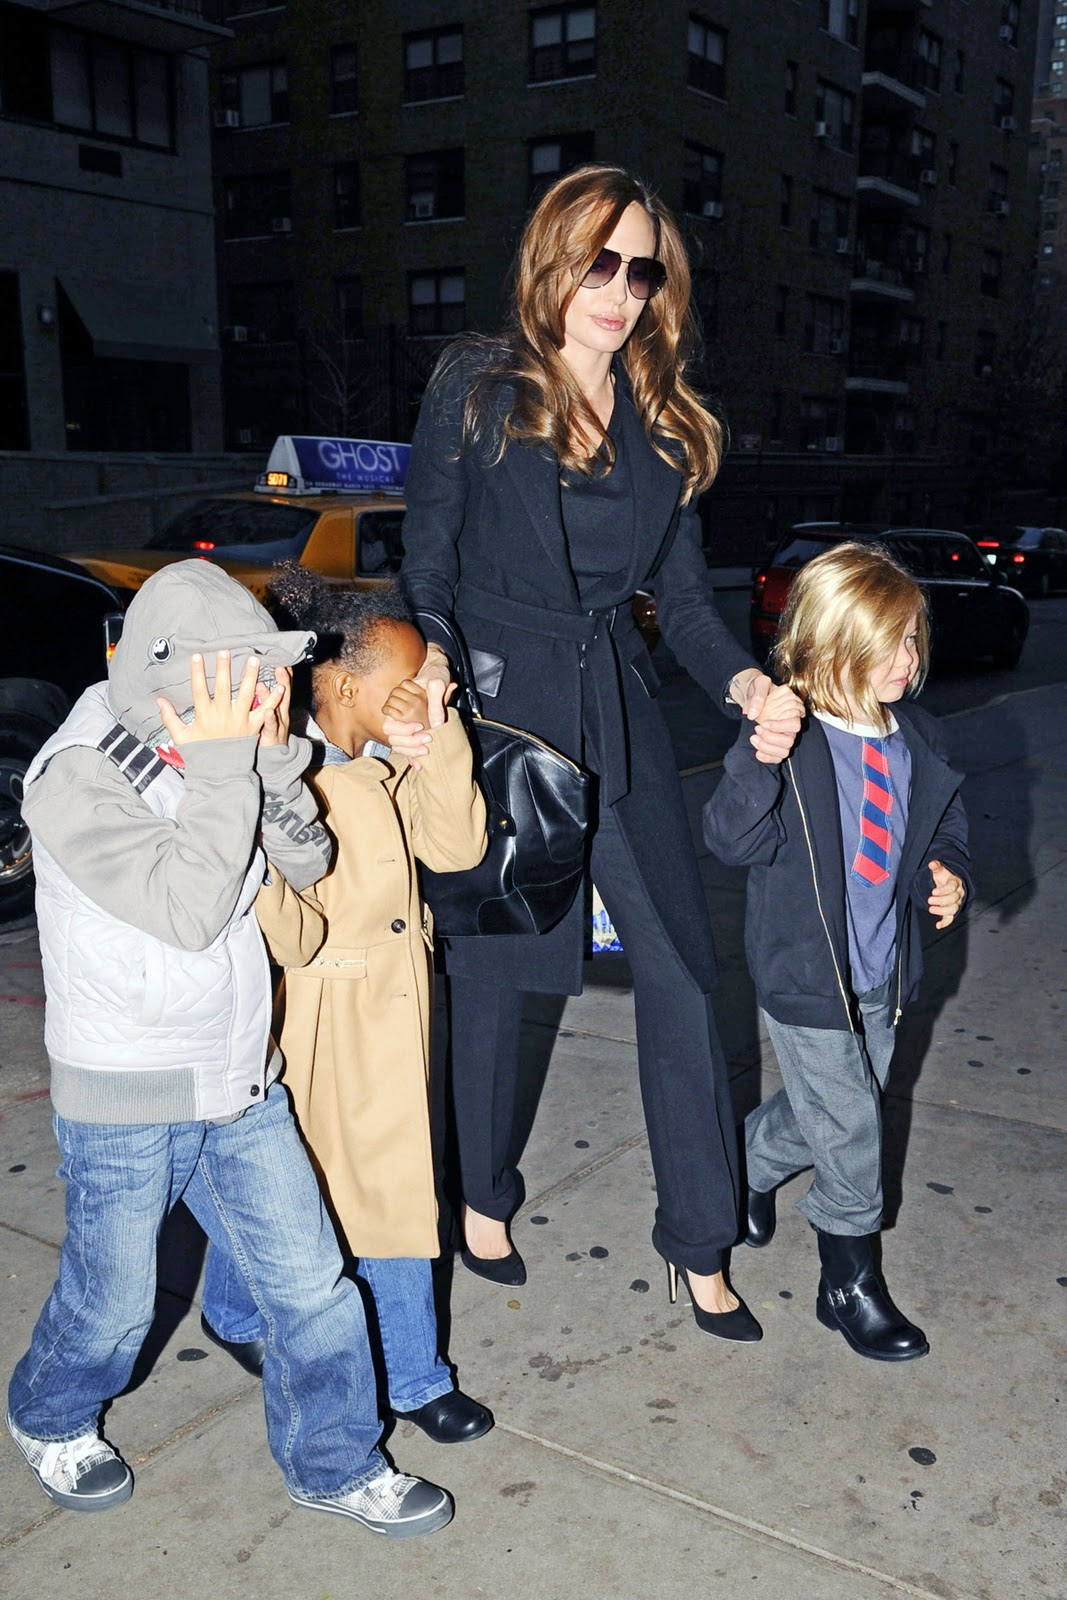 http://2.bp.blogspot.com/-bseObSdNNFU/TuneoGicoeI/AAAAAAAAEMc/8fmo5rUp7So/s1600/DailyCoolFun-Angelina+Jolie+and+her+children+to+watch+The+Muppets+in+New+York+City+%25281%2529.jpg